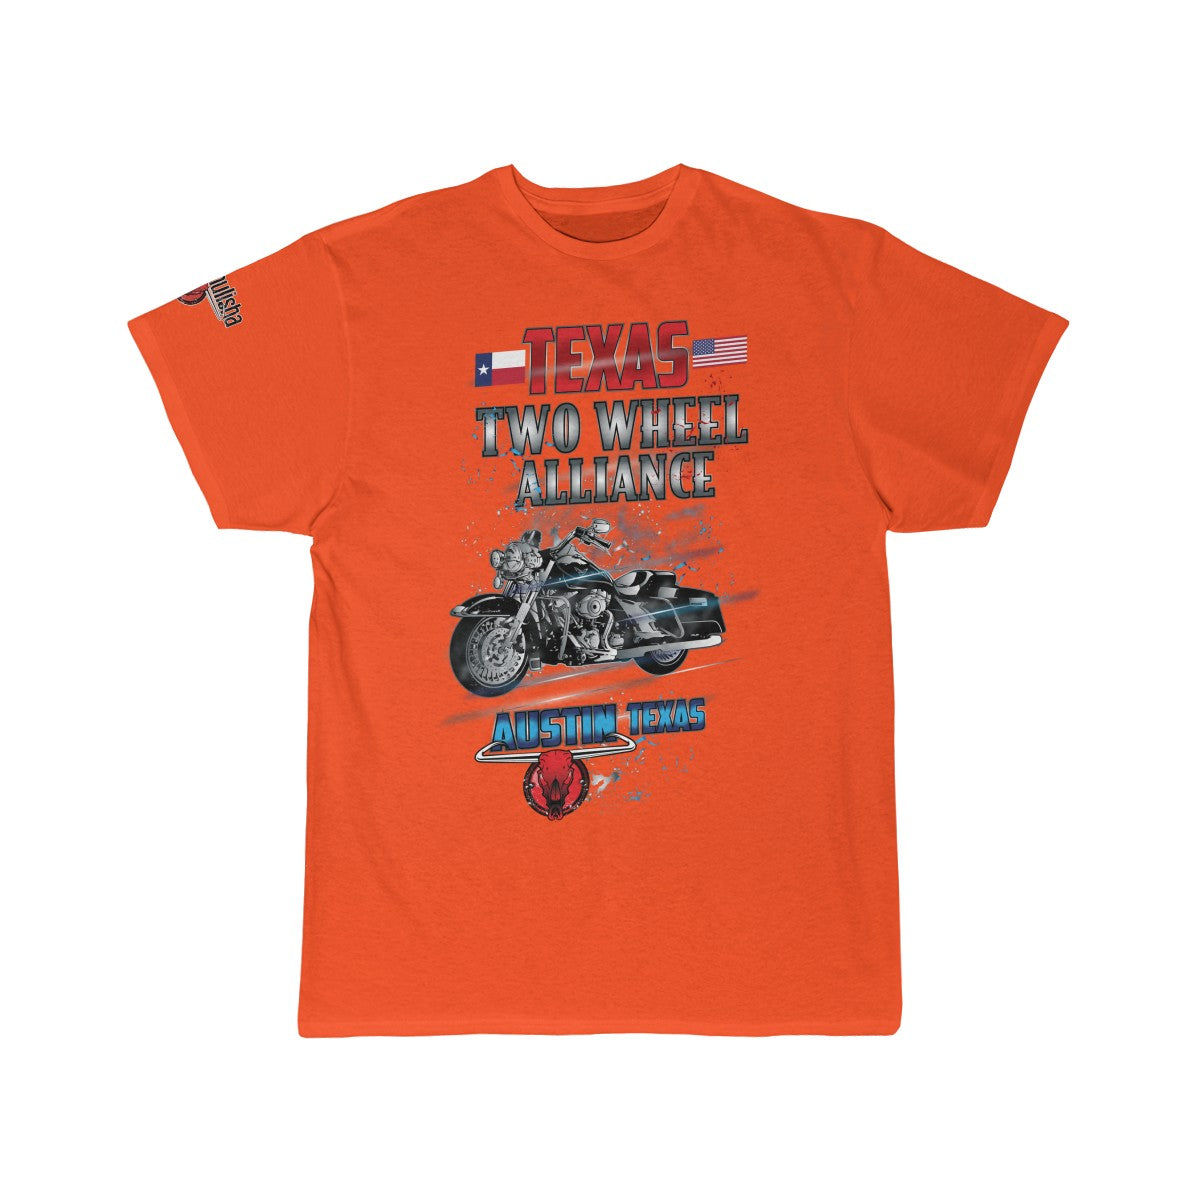 wills1mulisha Texas Two Wheel Alliance Men's Short Sleeve Tee